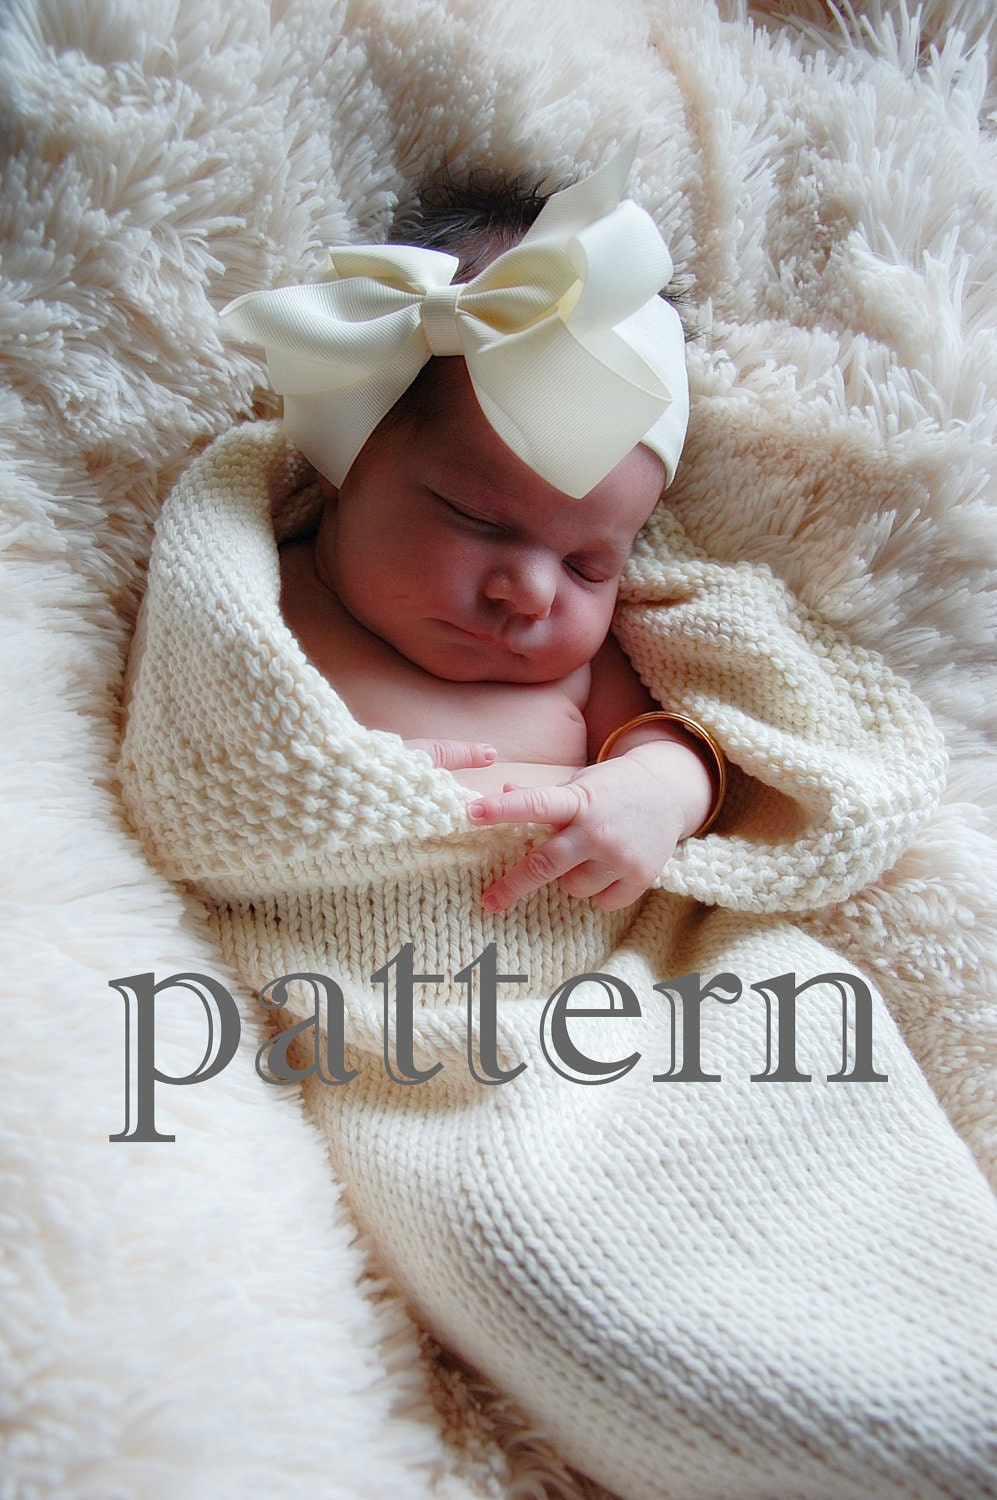 Immediate Download Two Knitting Patterns PDF for Swaddle